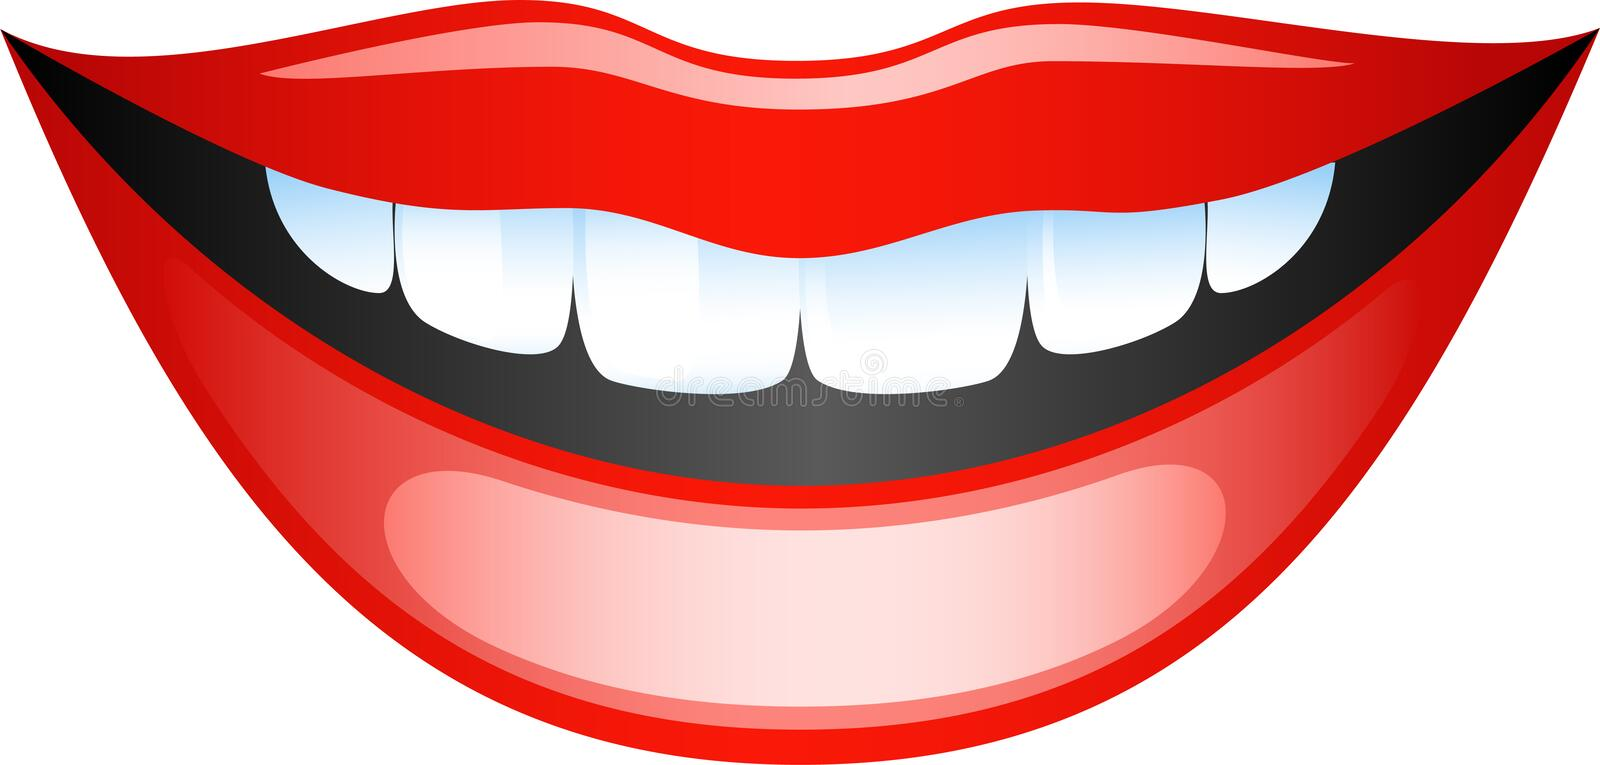 Lips vector illustration